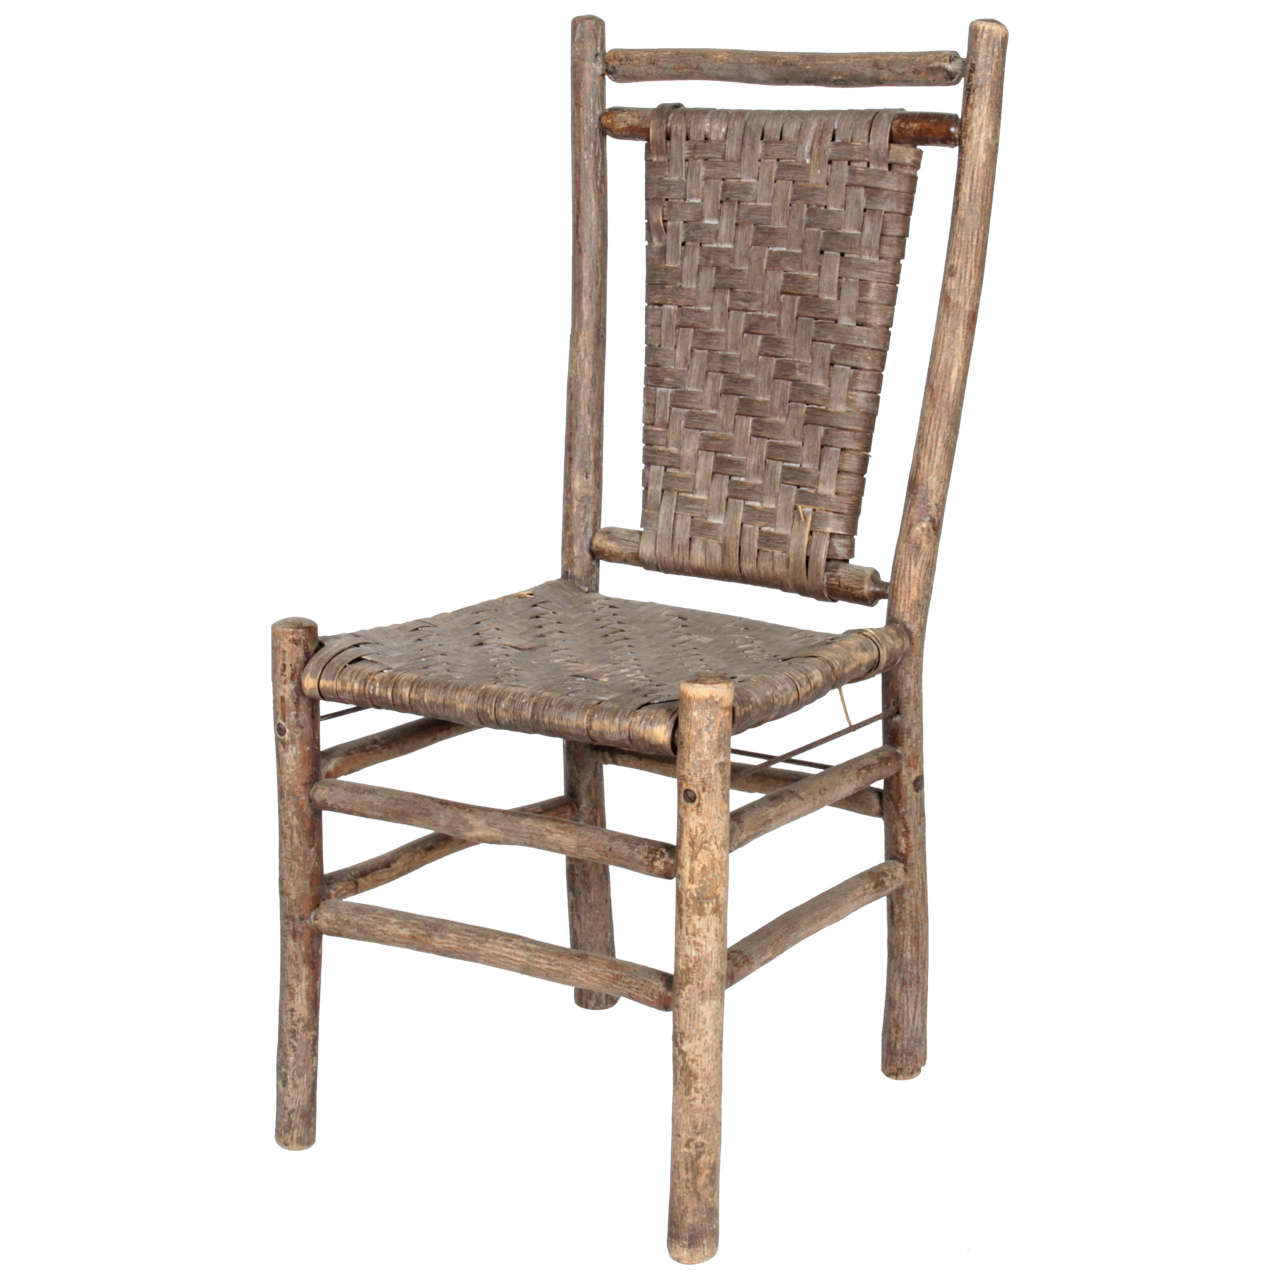 Old hickory side chair for sale at 1stdibs for Hickory chair bedroom furniture